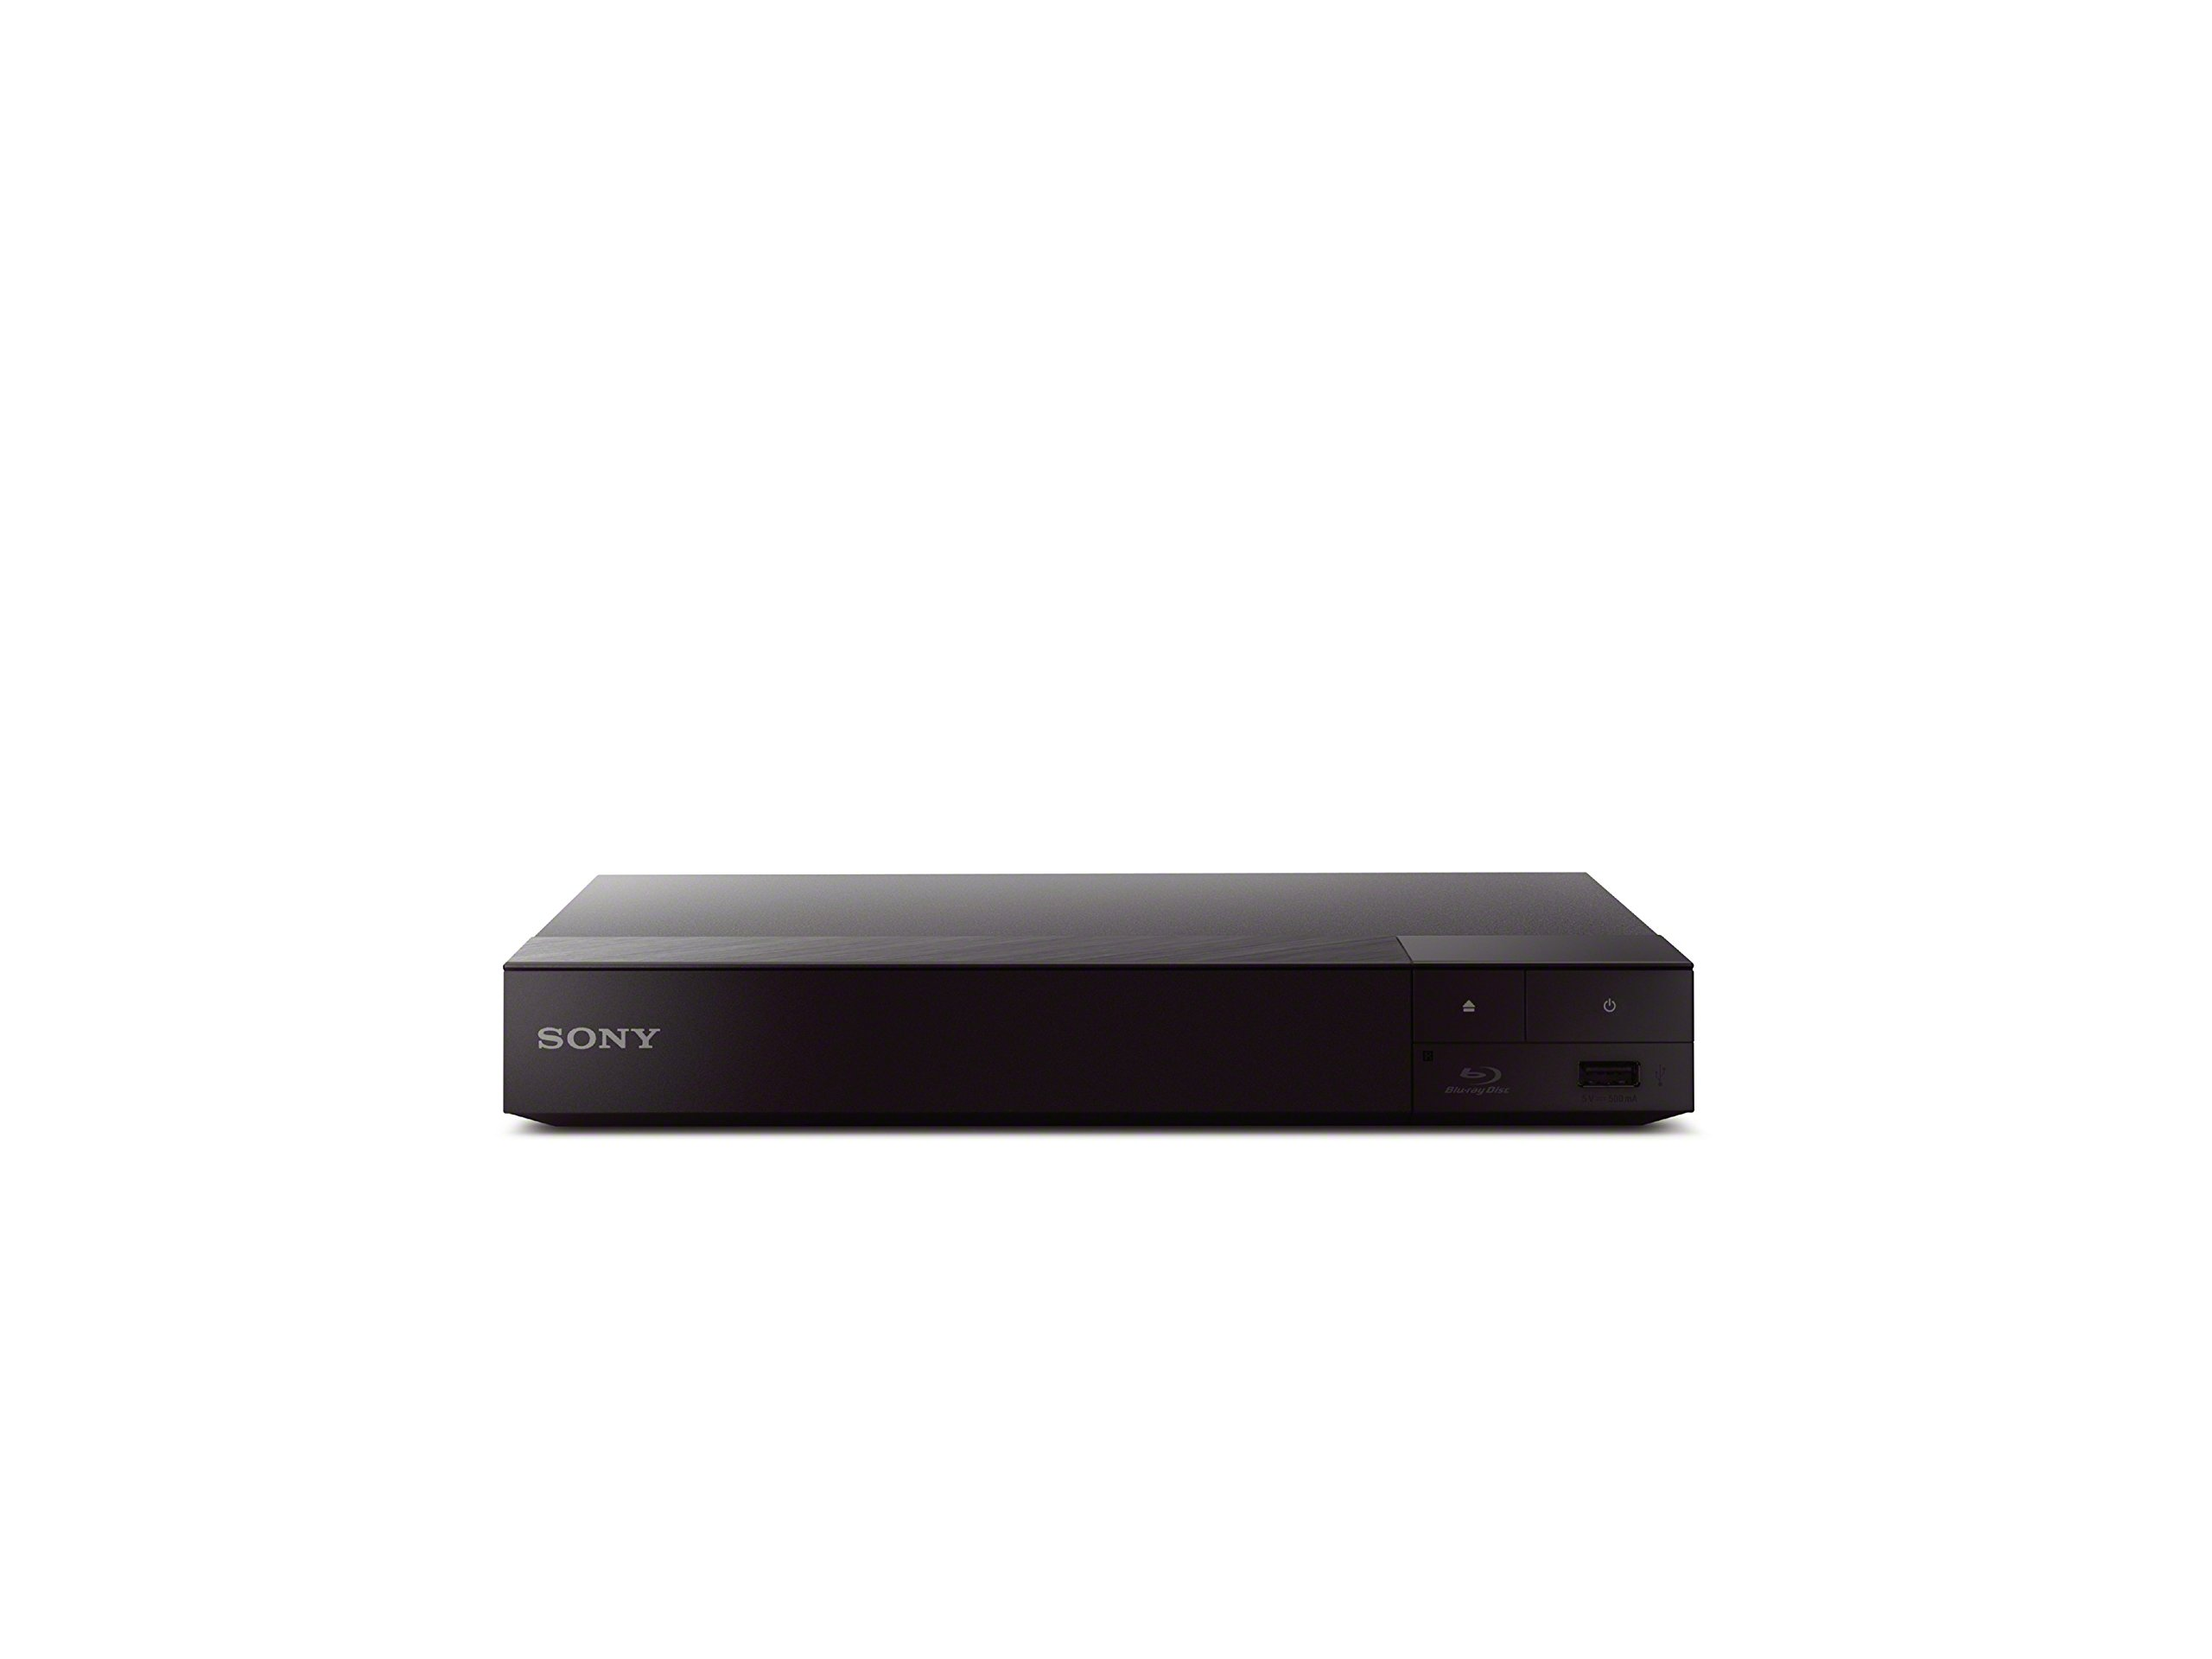 Sony BDP-S6700 4K Upscaling 3D Streaming Blu-ray Disc player w/ Wi-Fi HDMI Out (Certified Refurbished)